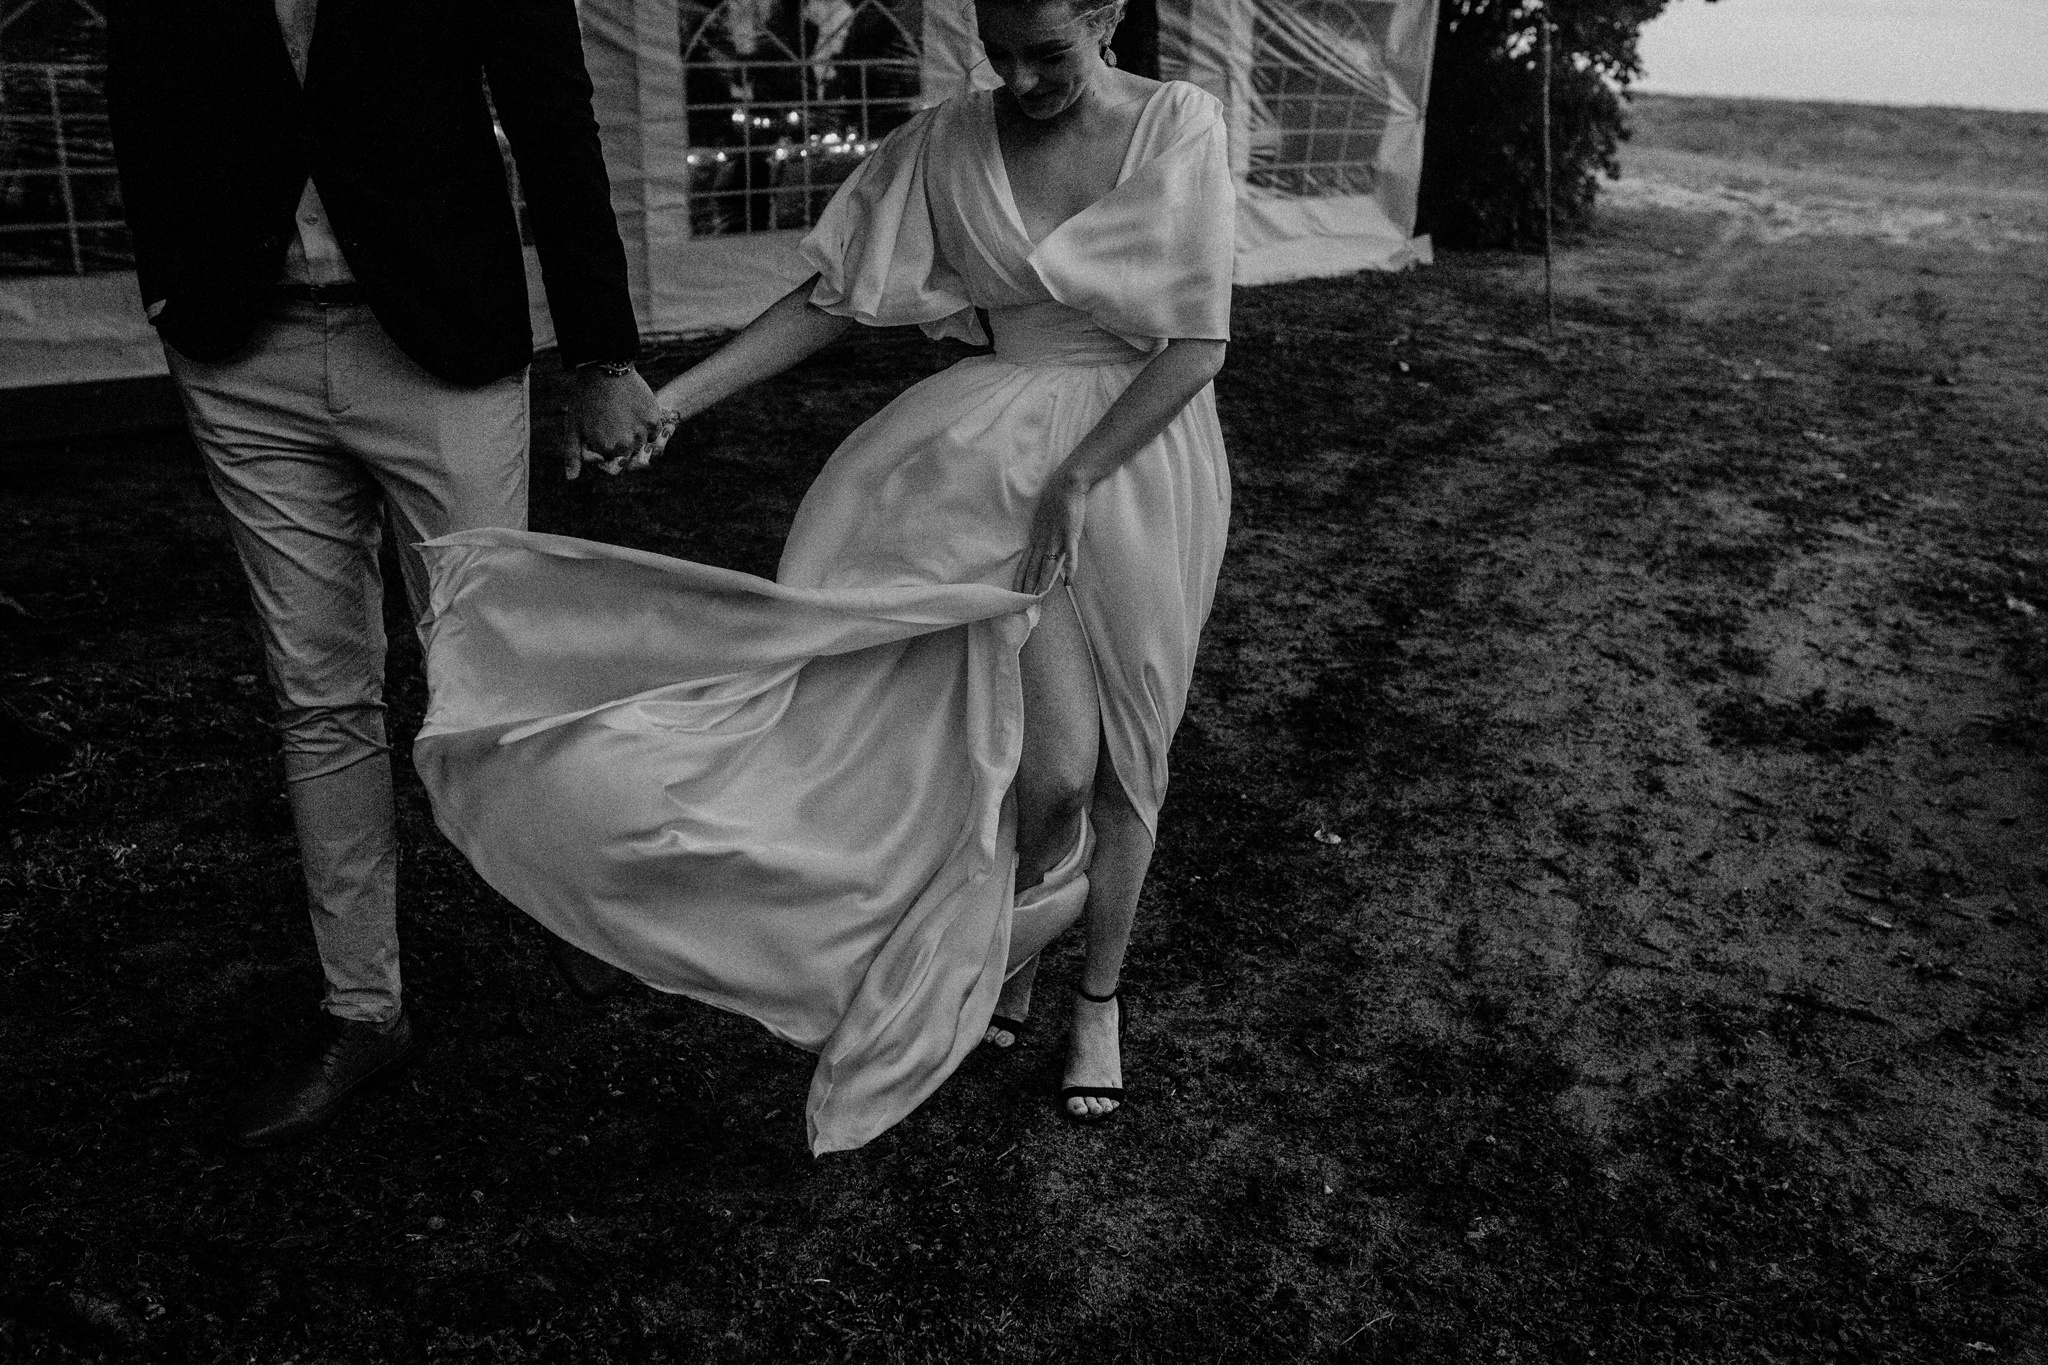 Camilla-French-Townsville-Cairns-Mission-Beach-Port-Douglas-Queensland-family-lifestyle-wedding-eleopment-photographer_0601.jpg